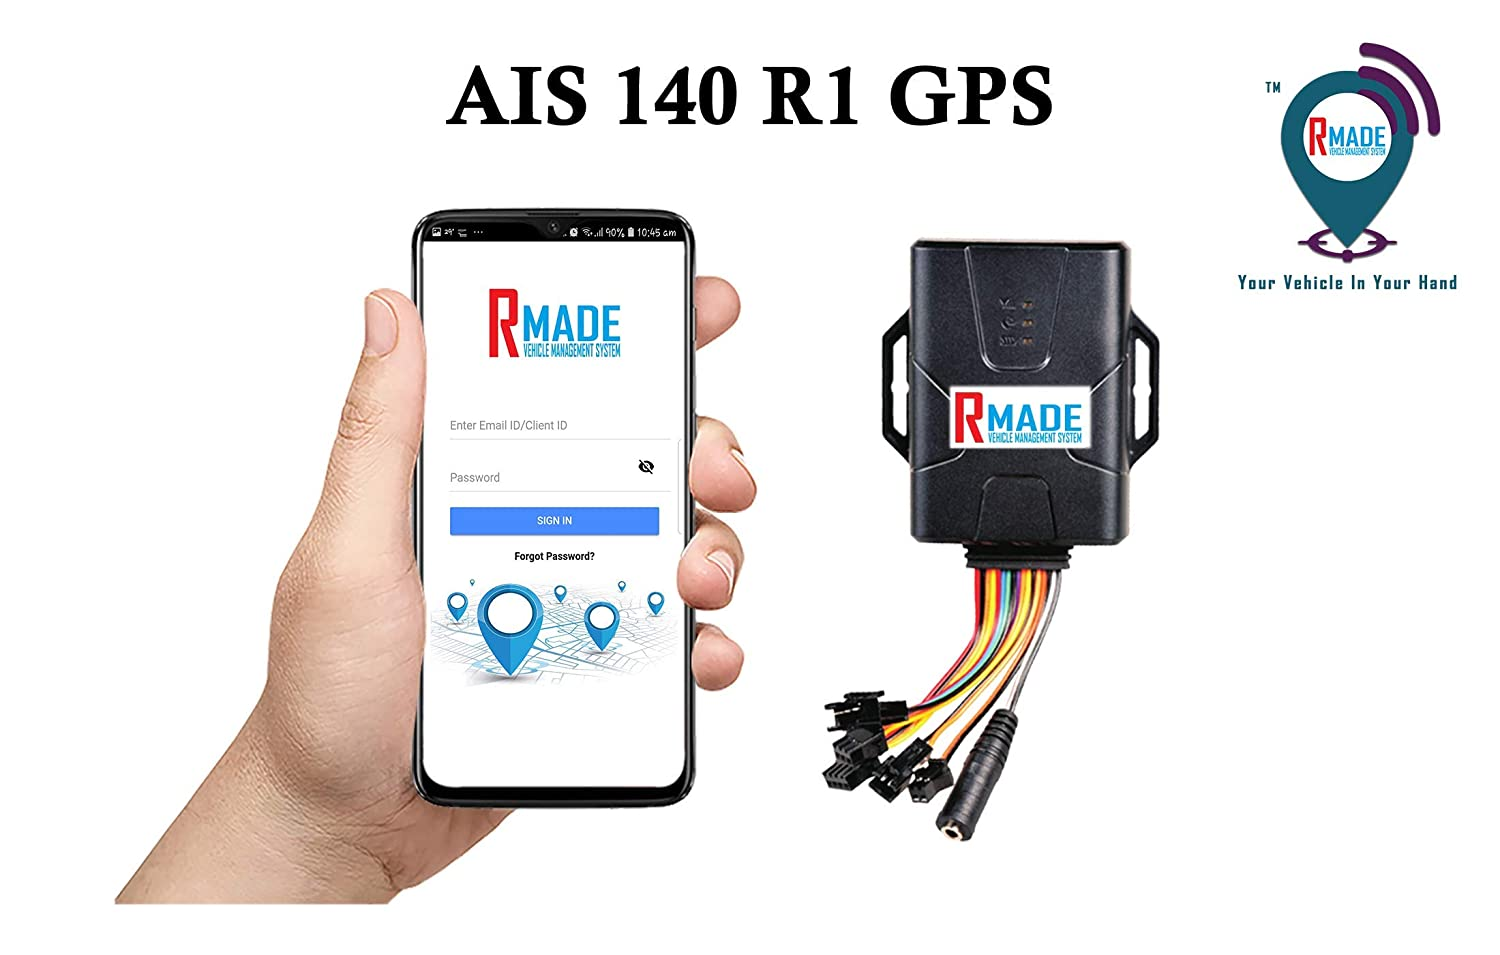 R MADE WE ARE TRAILBLAZERS AIS 140 Govt Approved GPS: Amazon